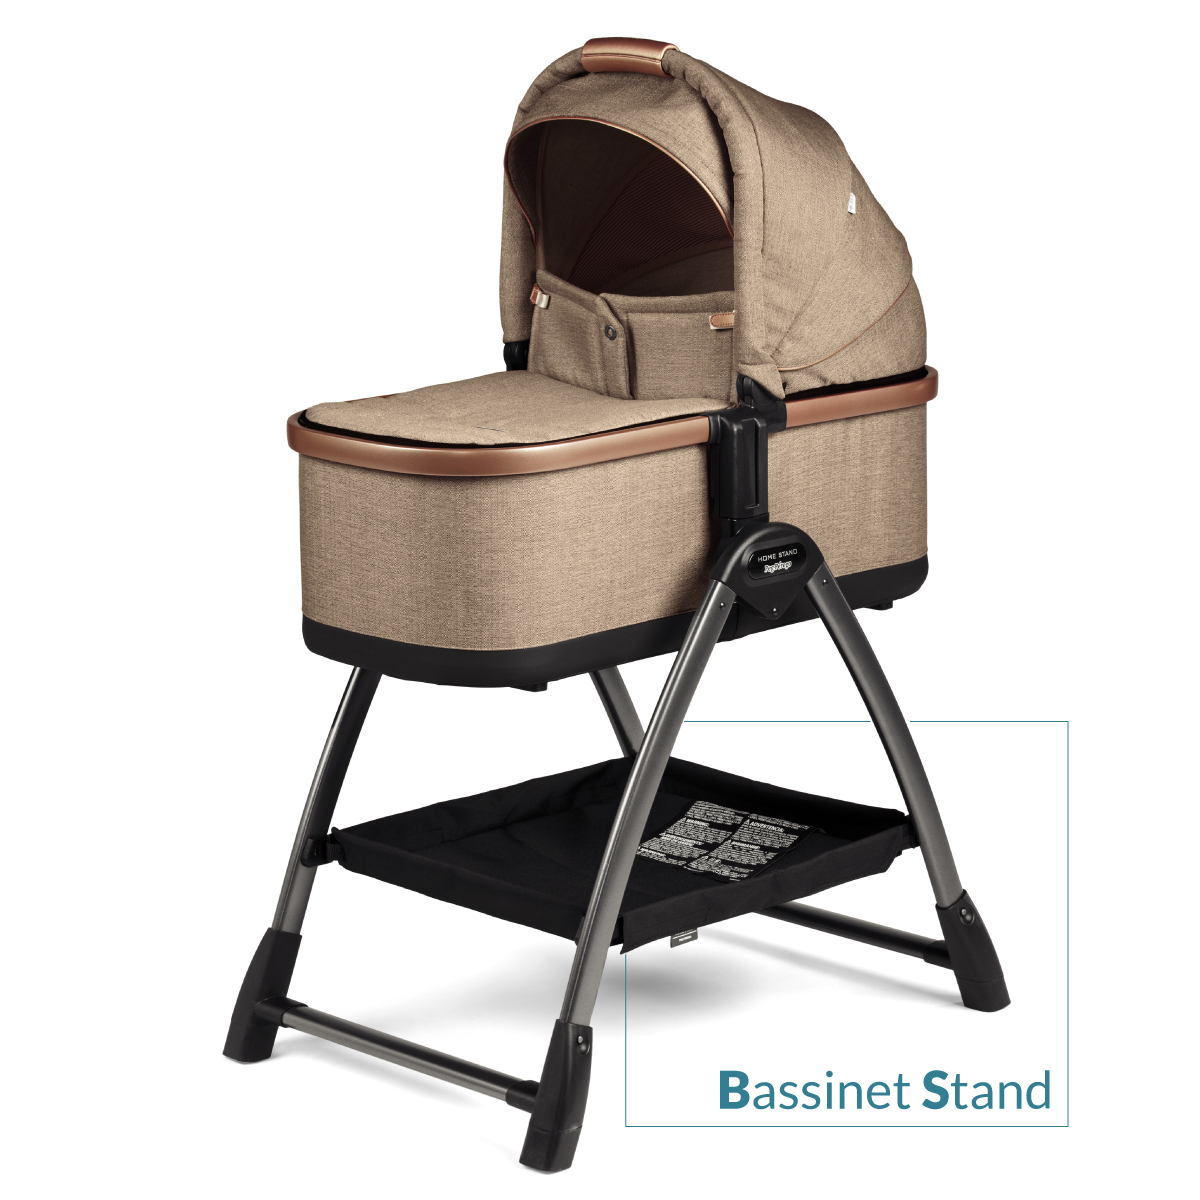 Ypsi_Blog_cover_bassinet